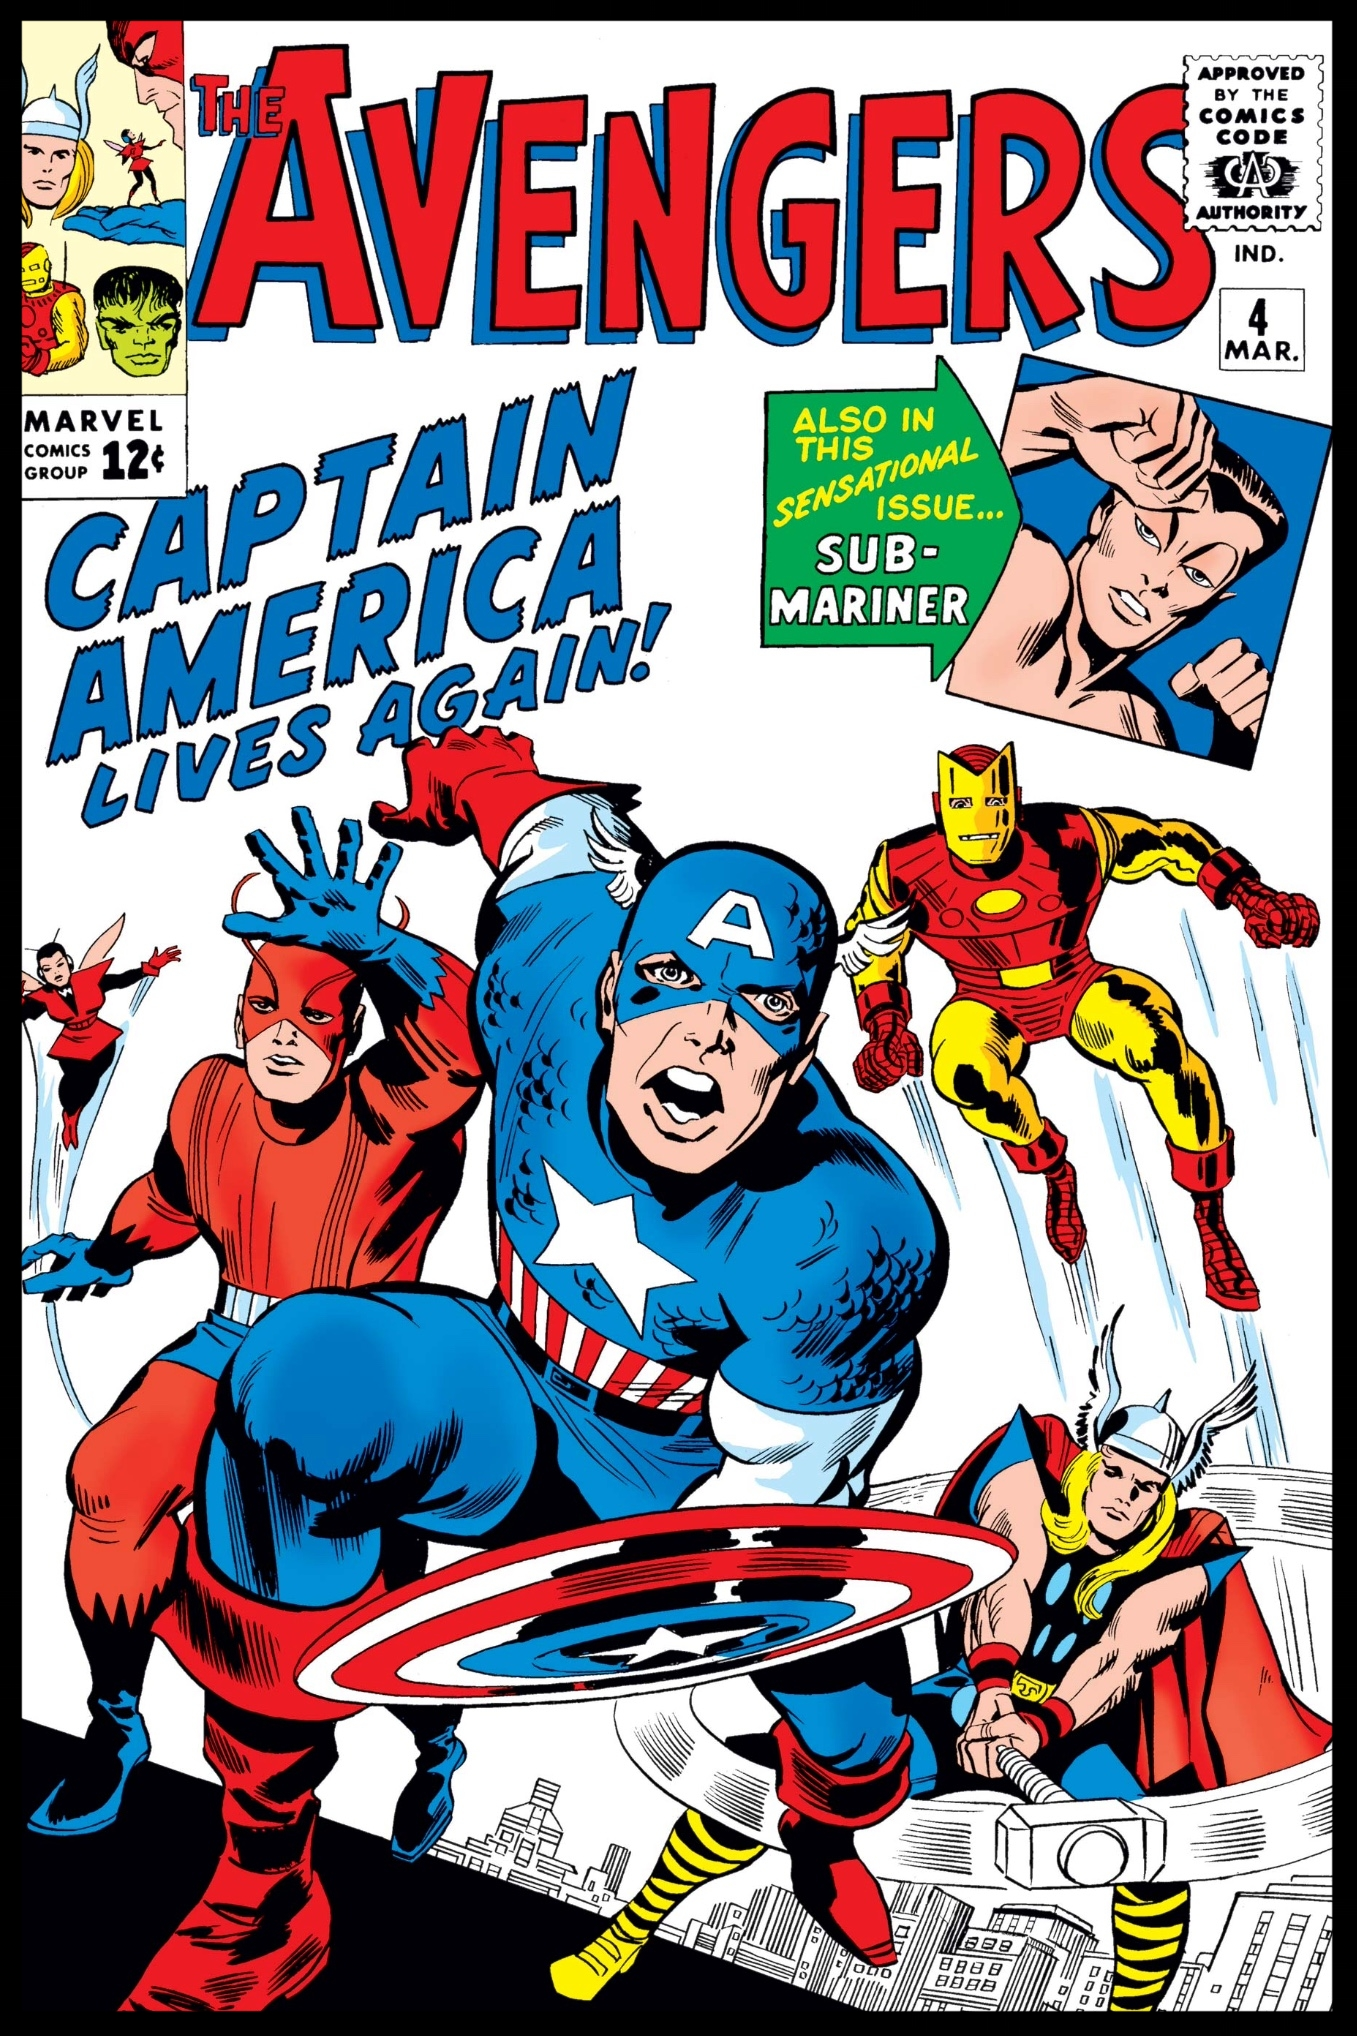 The Avengers (1963) #4 Cover